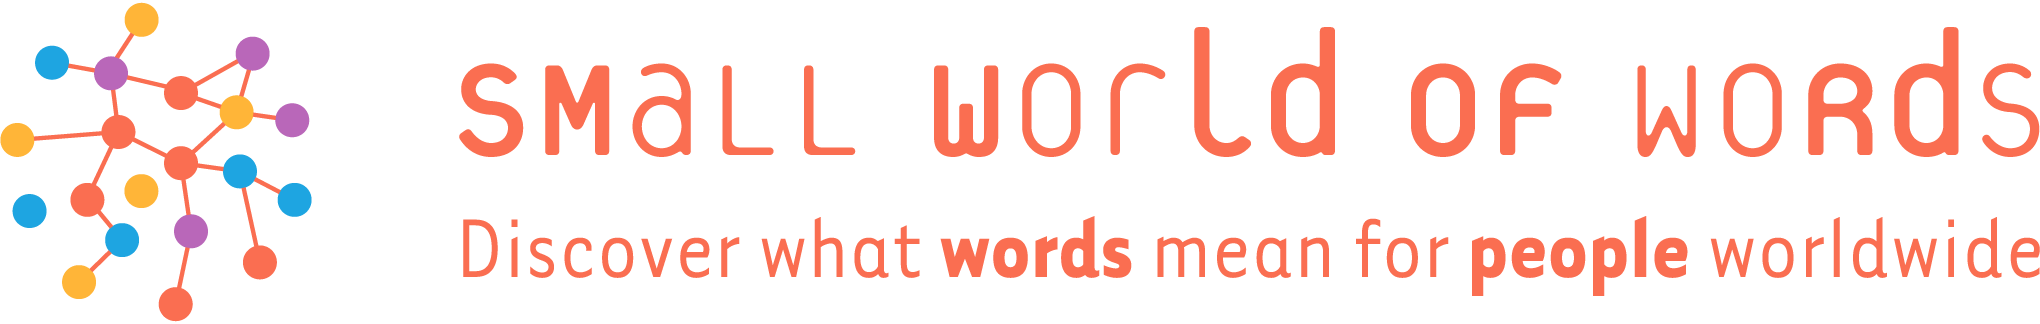 Small World of Words - Discover what words mean to people worldwide.